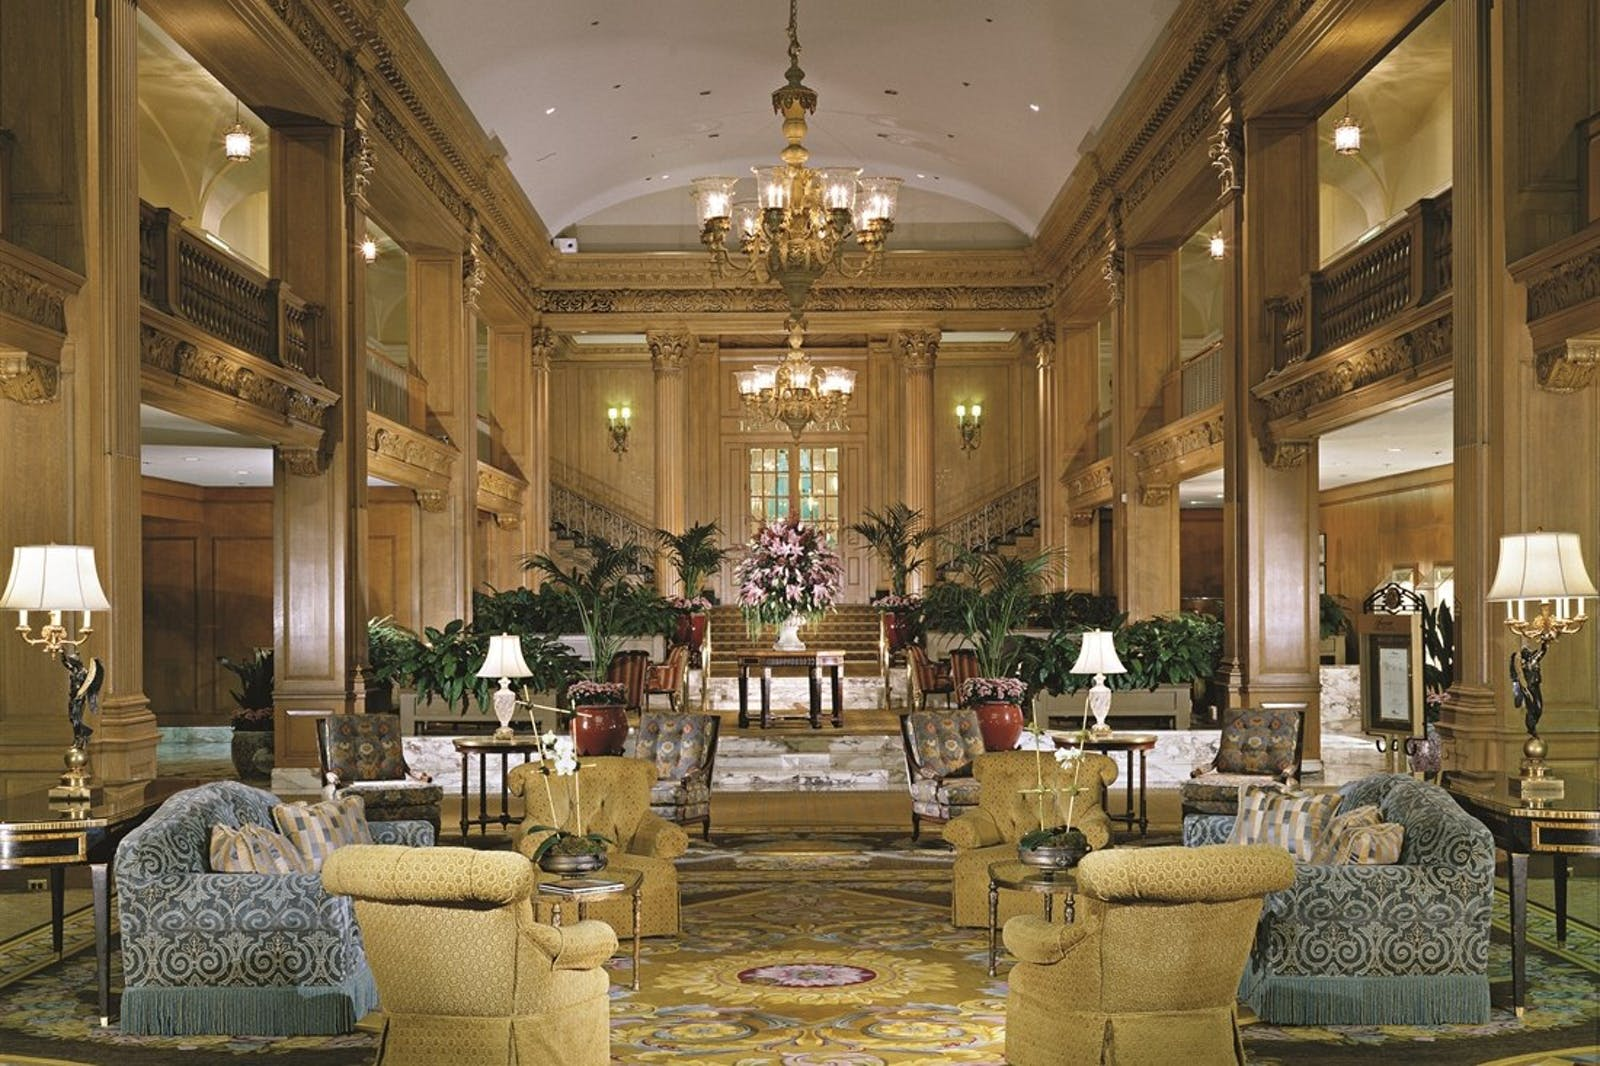 Lobby at Fairmont Olympic Hotel, Seattle